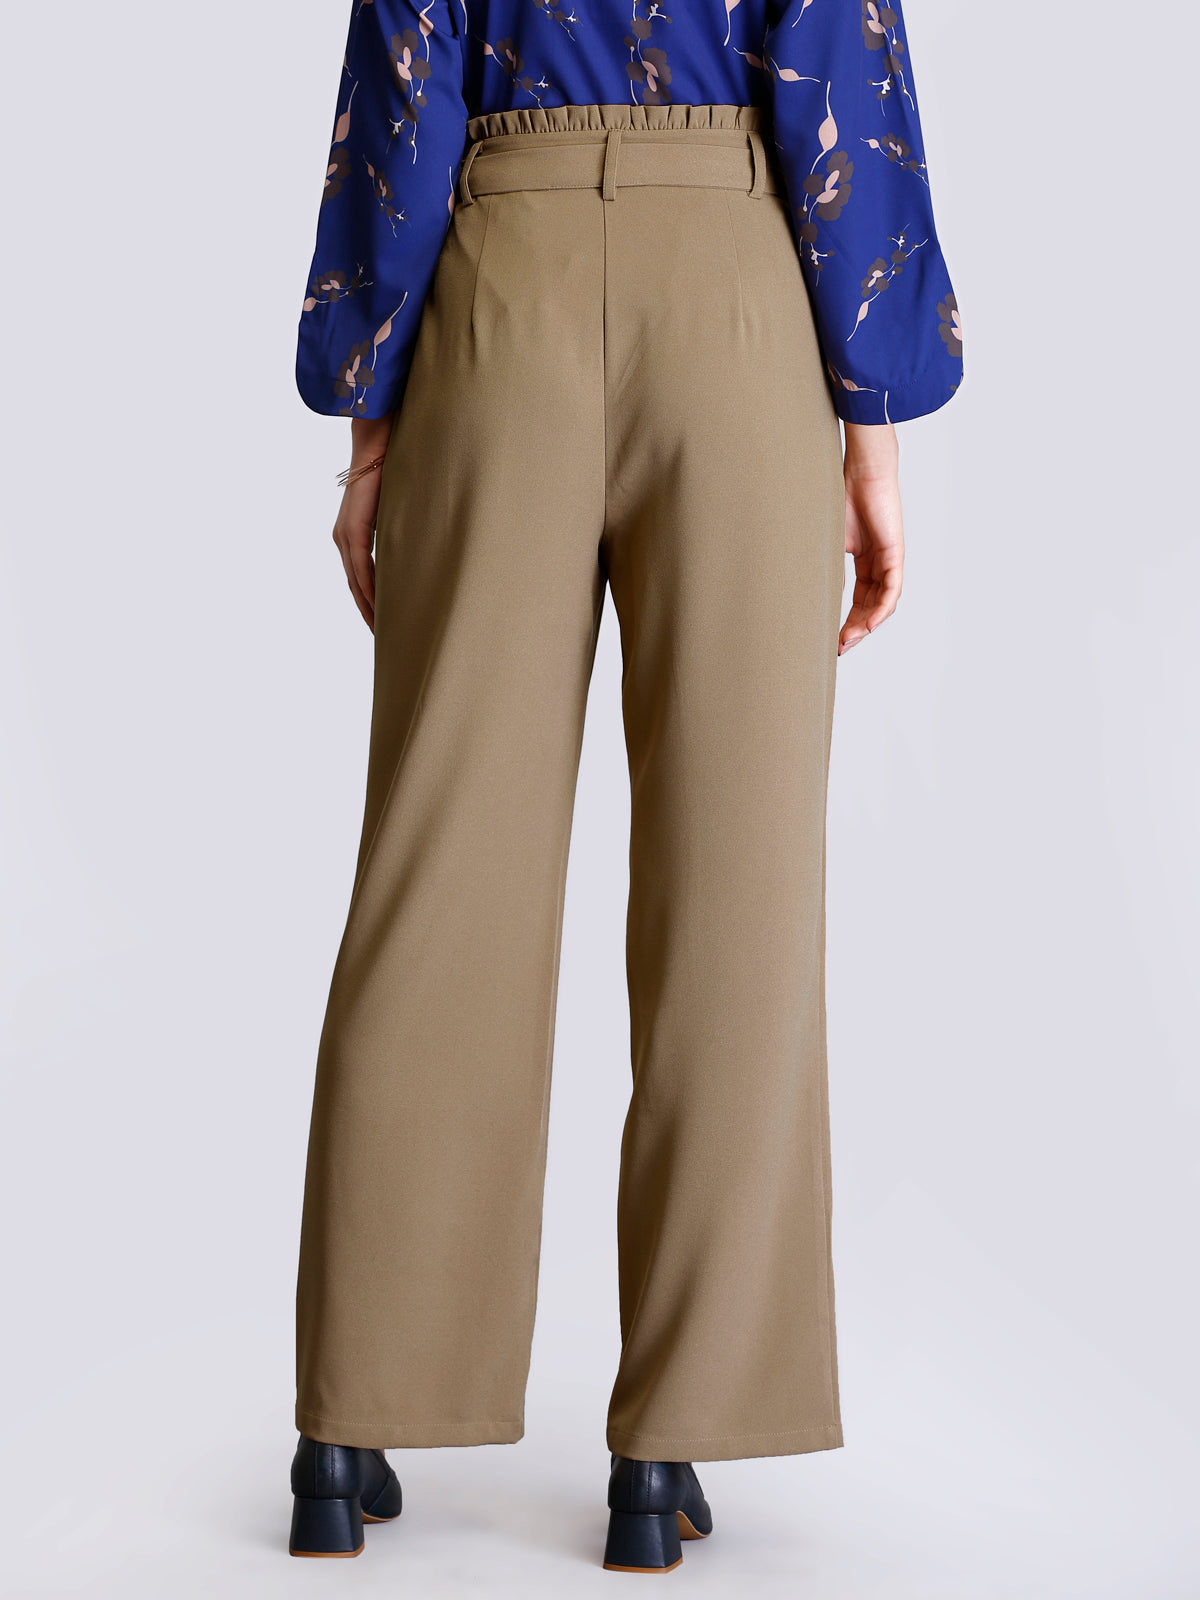 Paperbag Waist Tie Up Pants - Beige